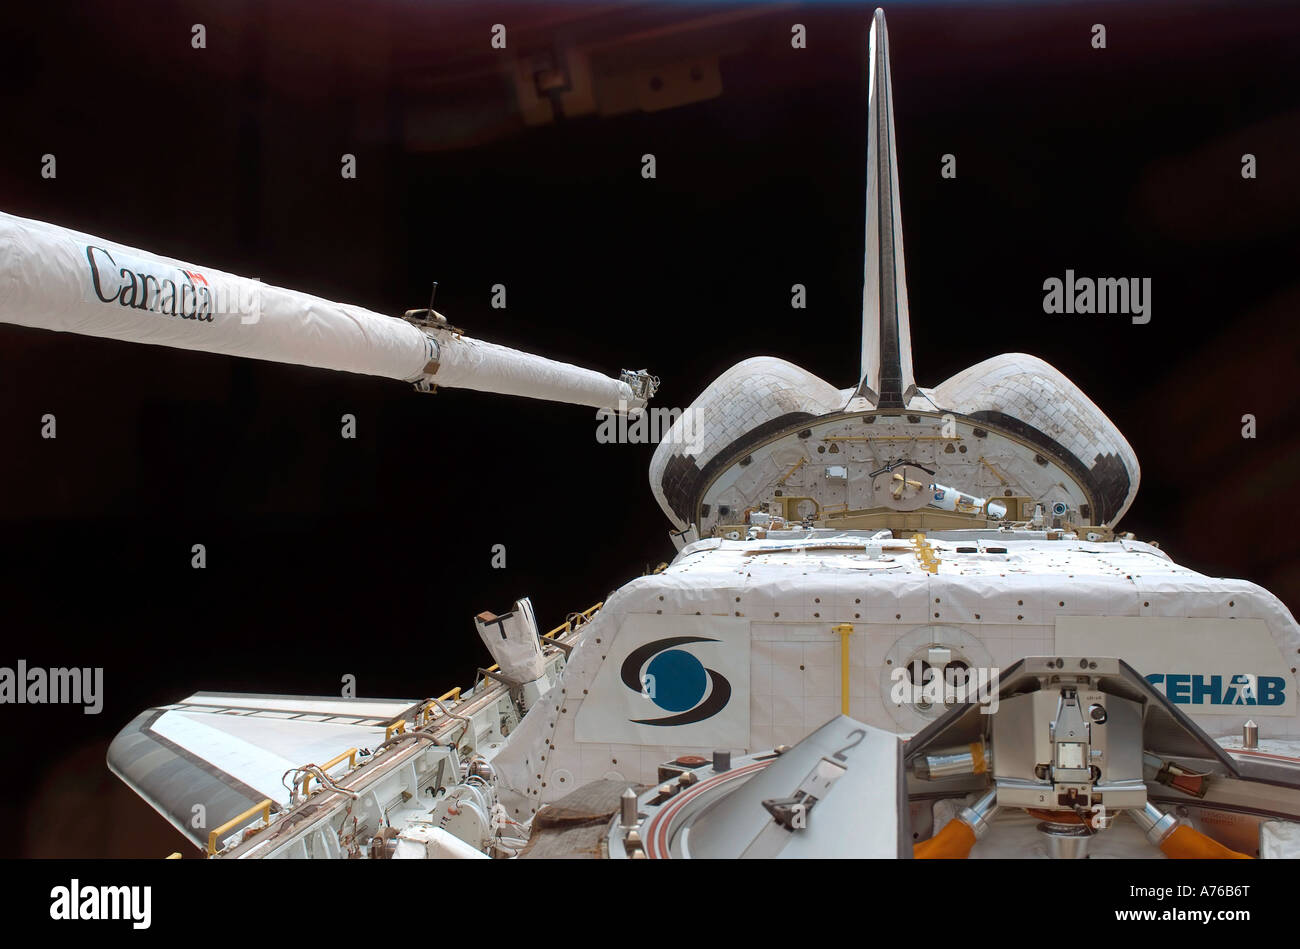 space shuttle visible 2017 - photo #42